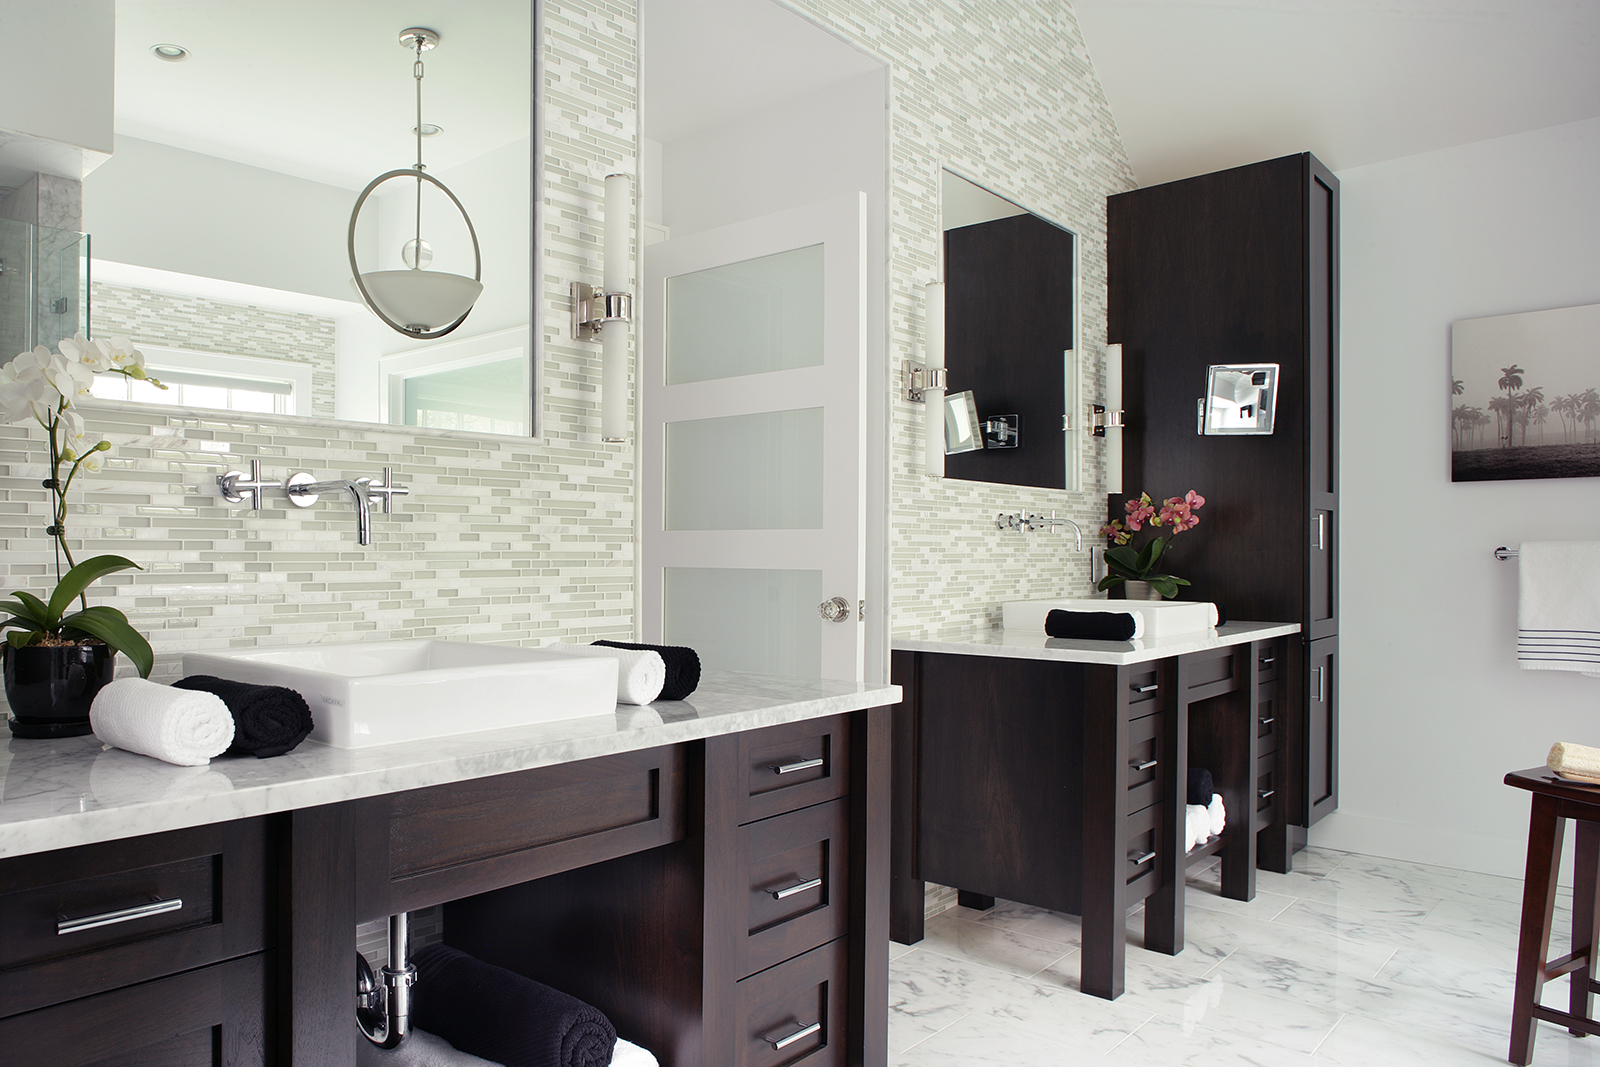 Bathroom design design your lifestyle for Modern bathroom ideas 2015